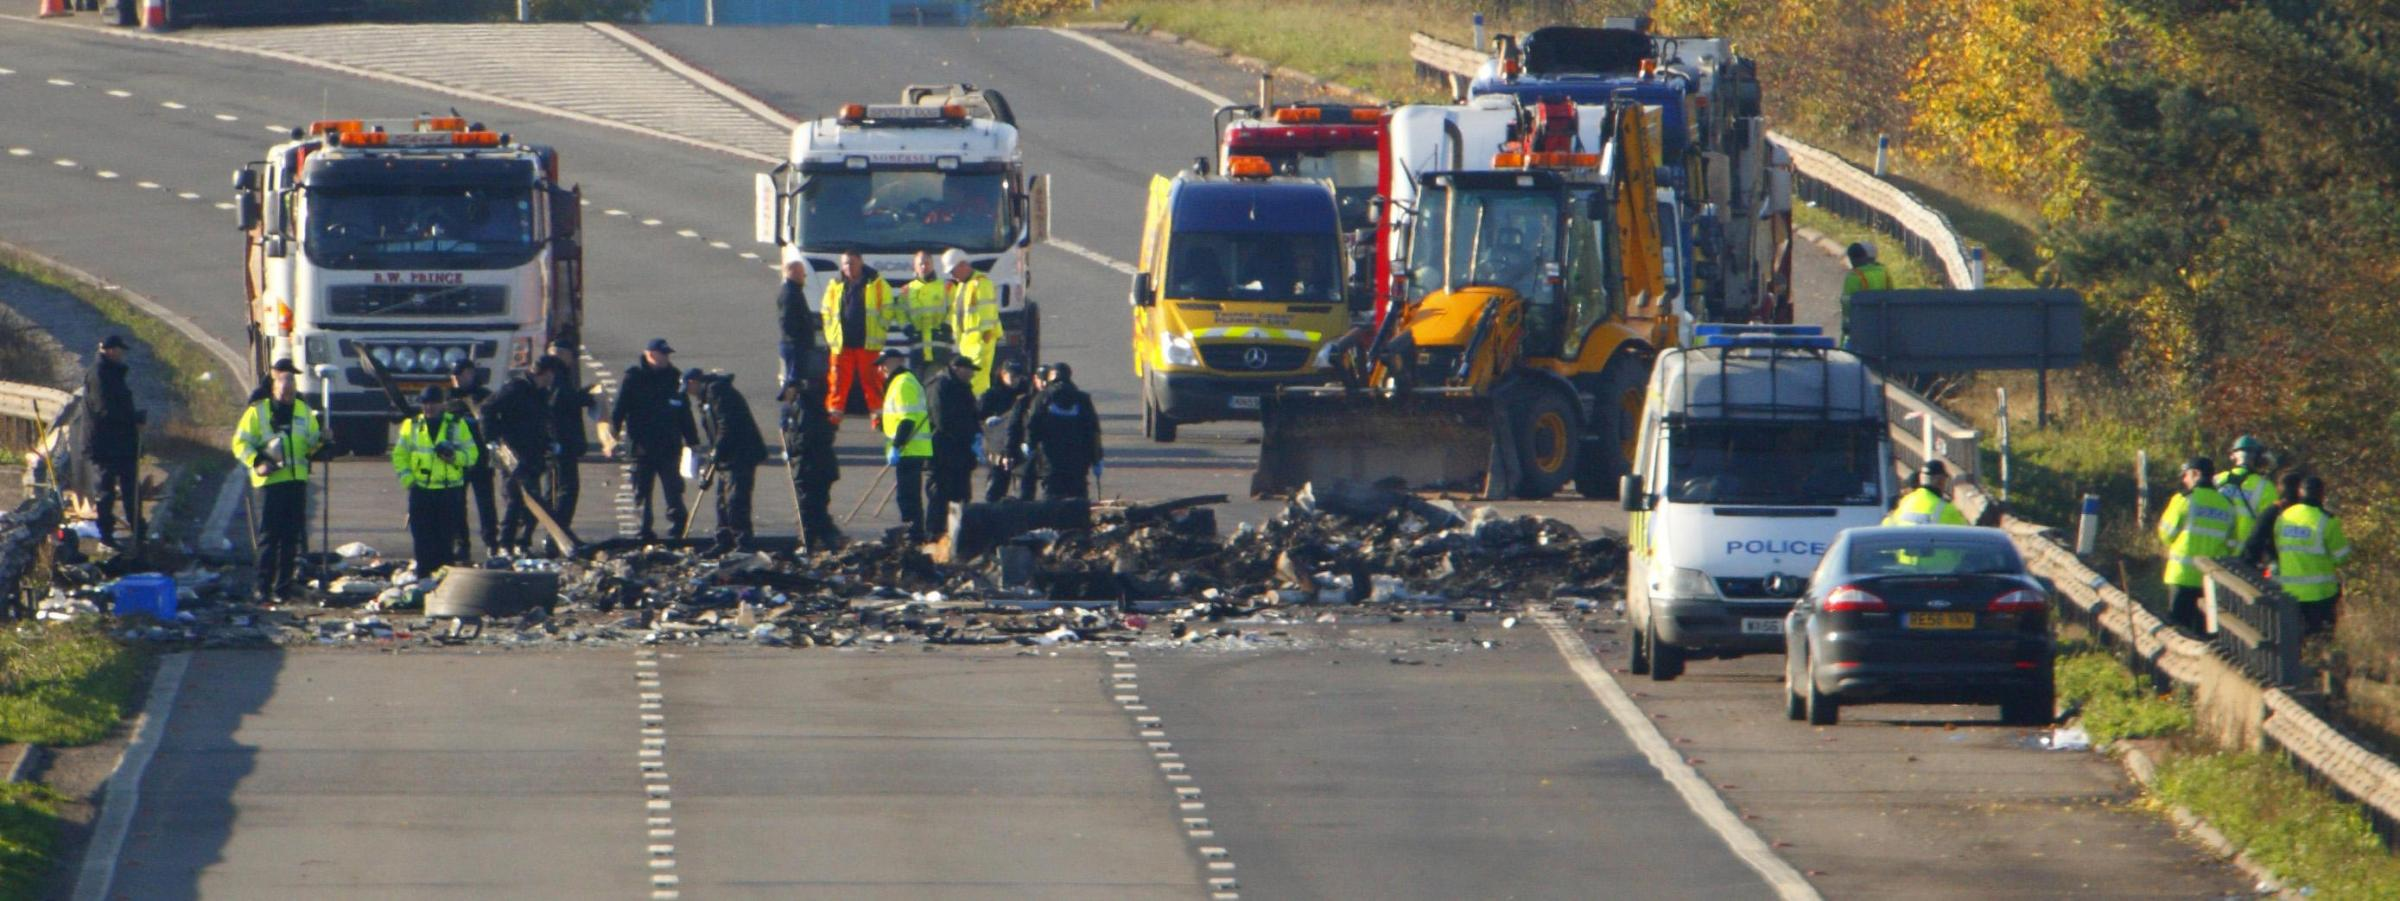 'Fireworks may have distracted drivers' - M5 death crash inquest